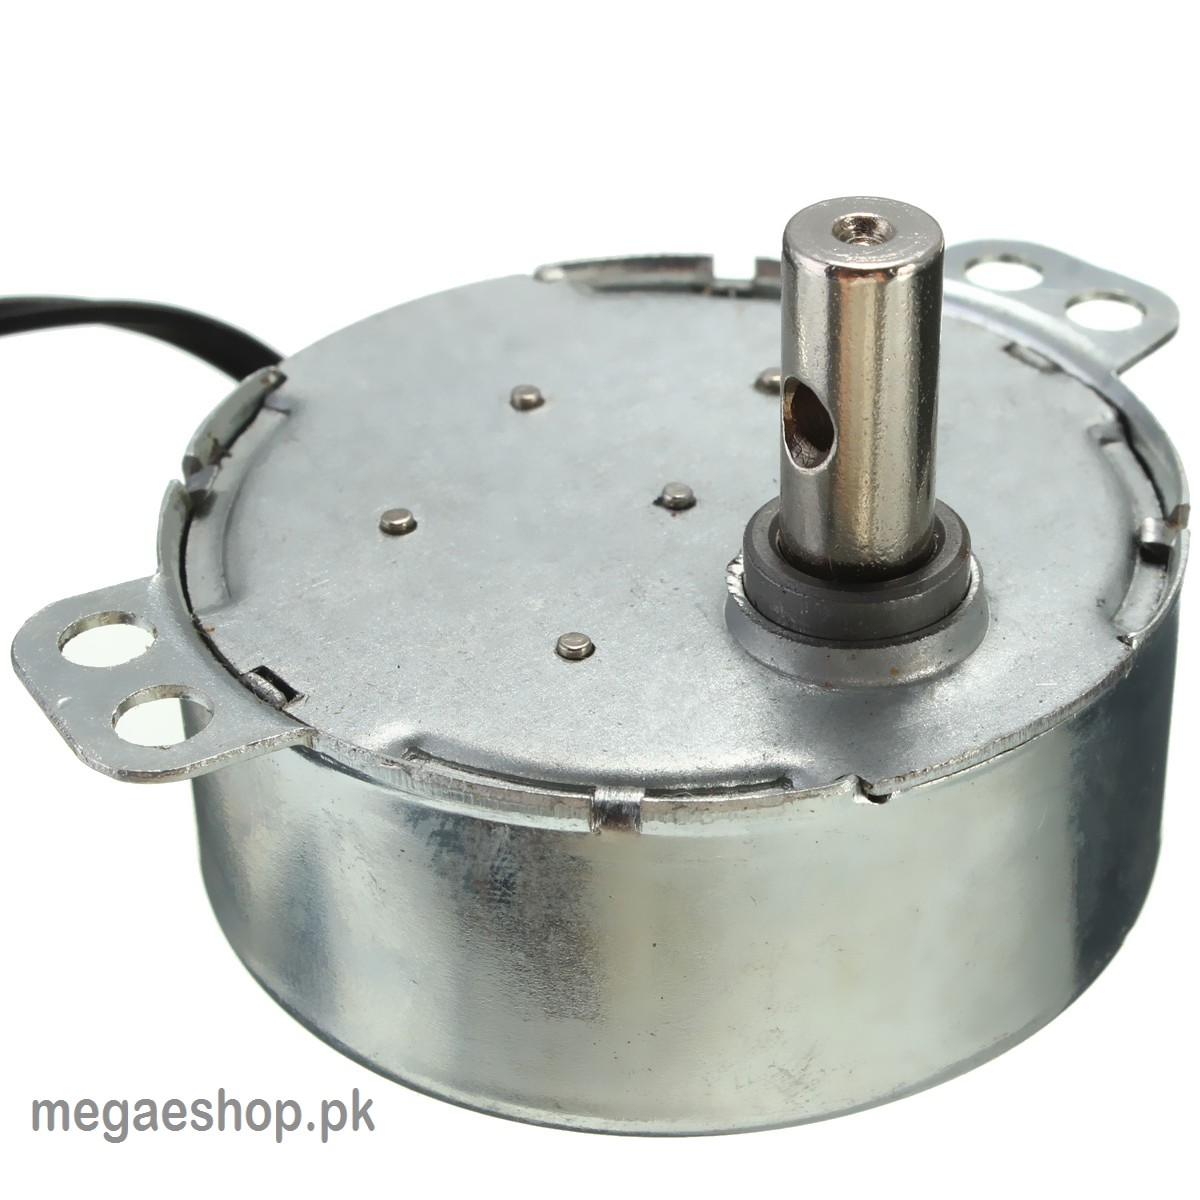 Synchronous Motor For Micro Crafts Rotate Exhibition